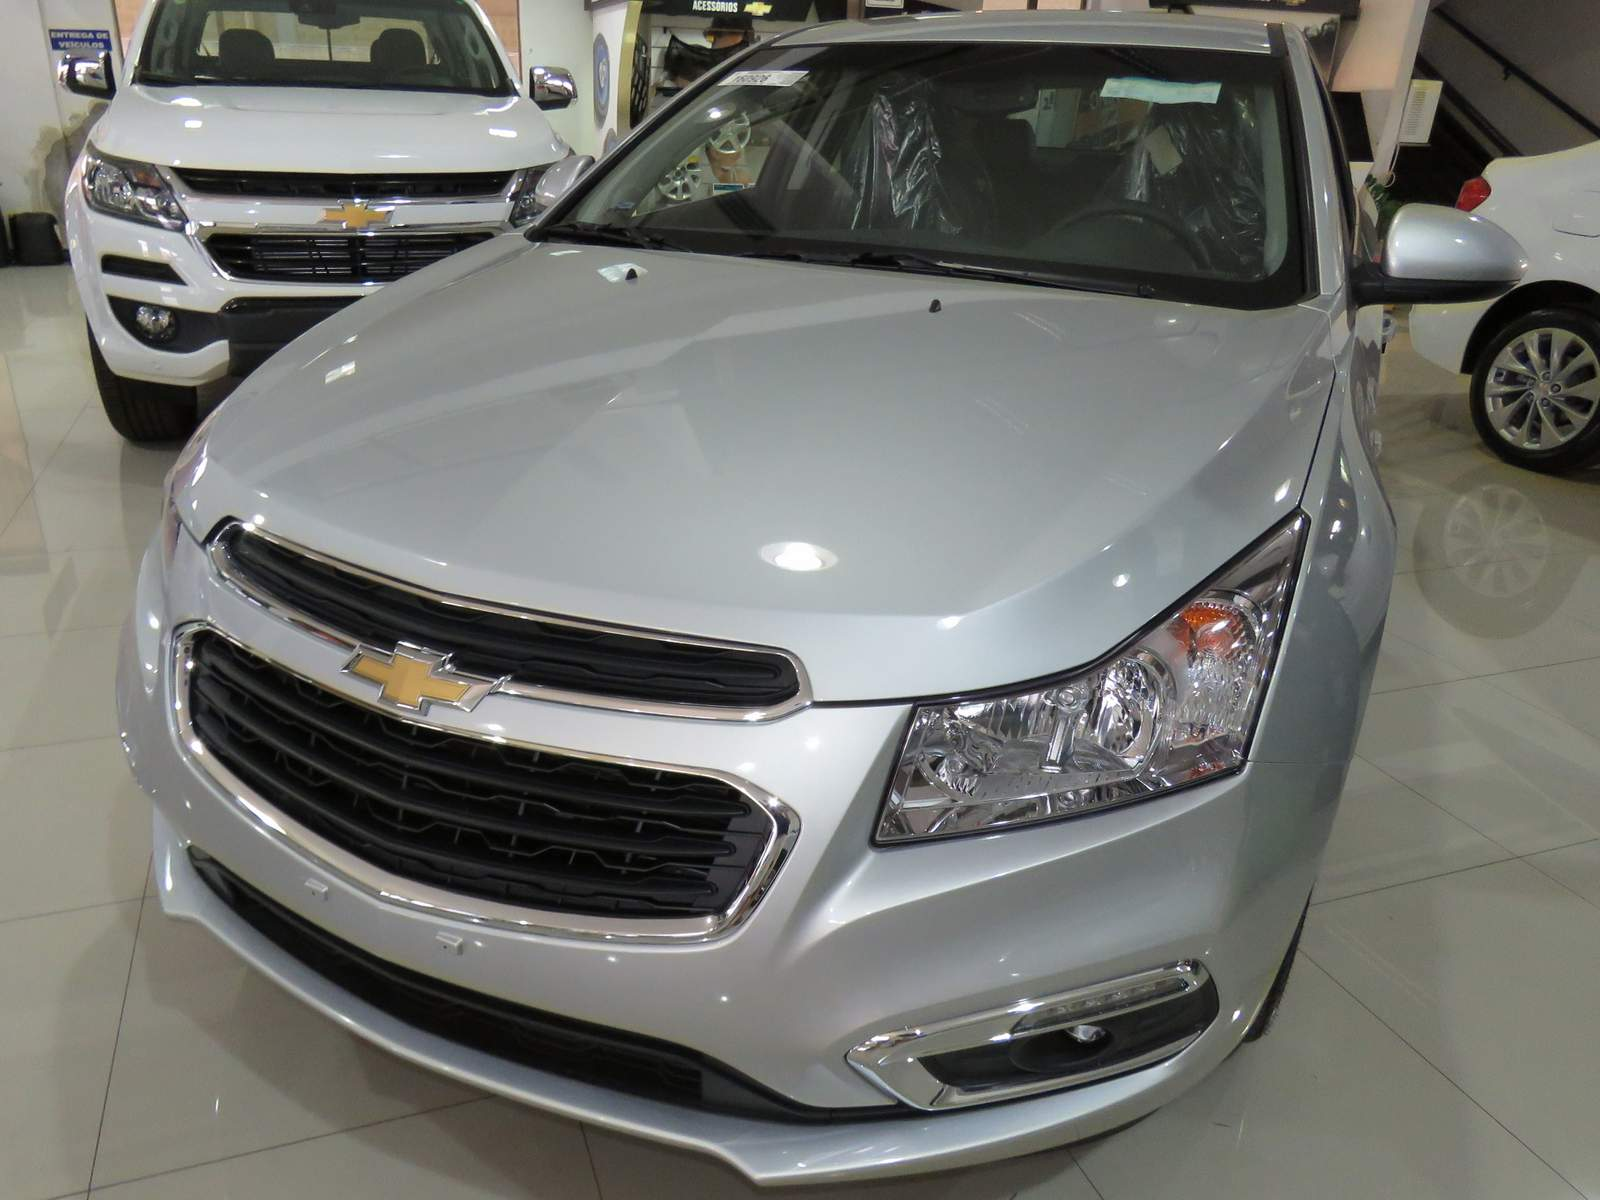 not cias ponto com chevrolet cruze sport6 2016 lt vendido a r reais. Black Bedroom Furniture Sets. Home Design Ideas